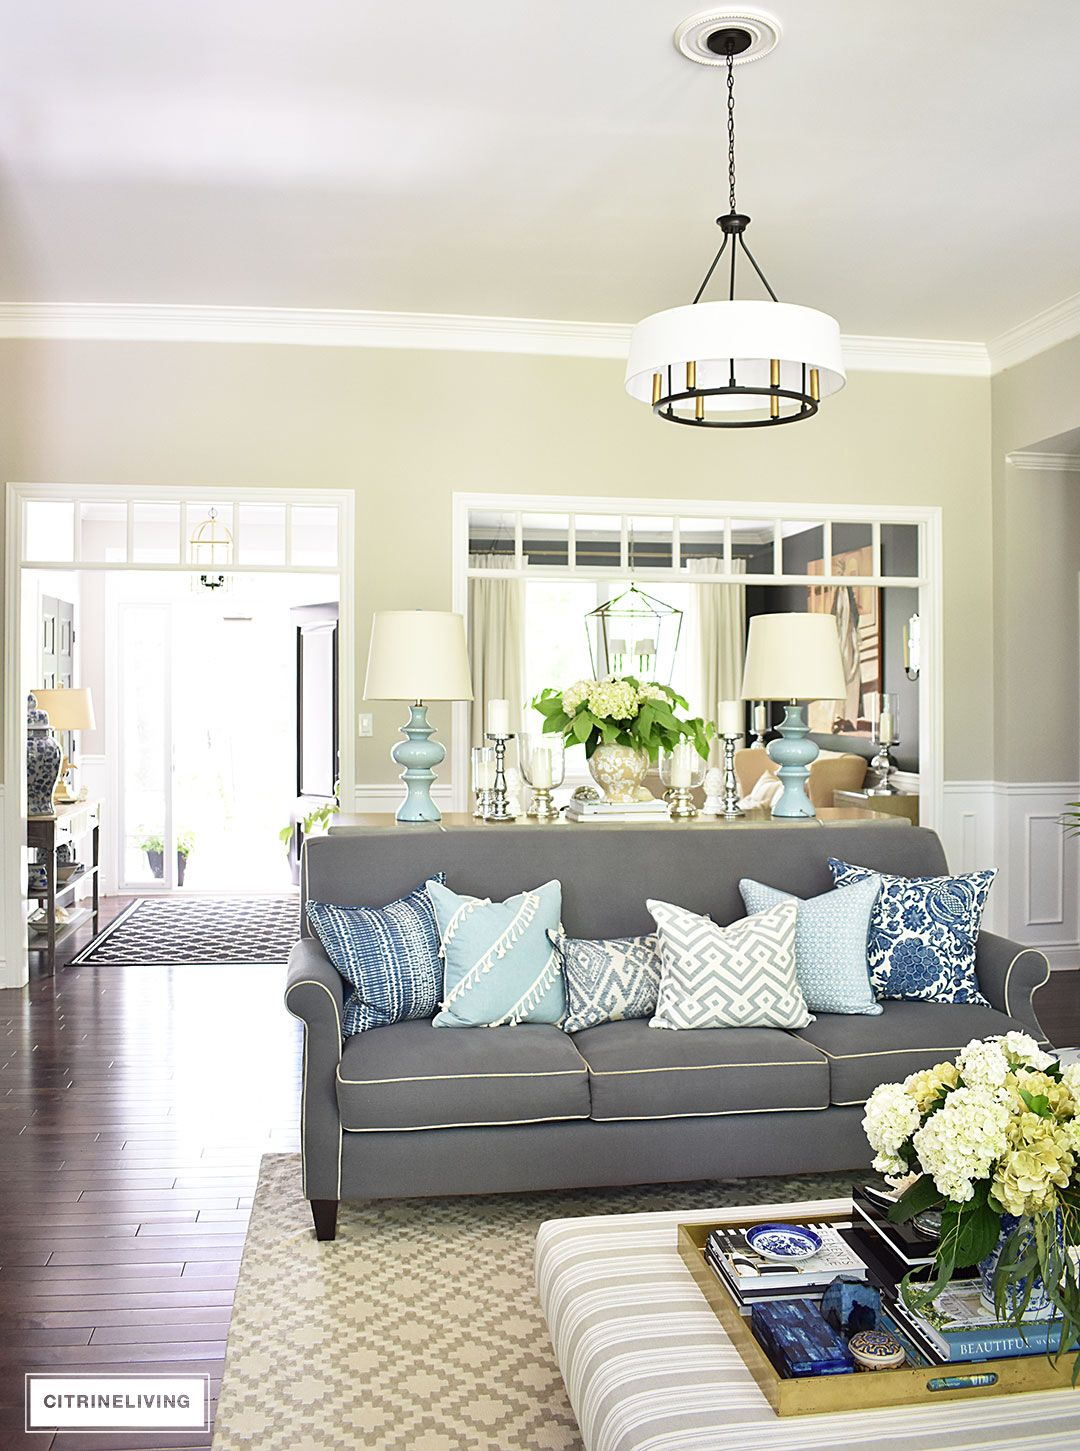 Shades Of Summer Home Tour With Beautiful Blues And Fresh Greenery Living Room Grey Living Room Remodel Home Decor